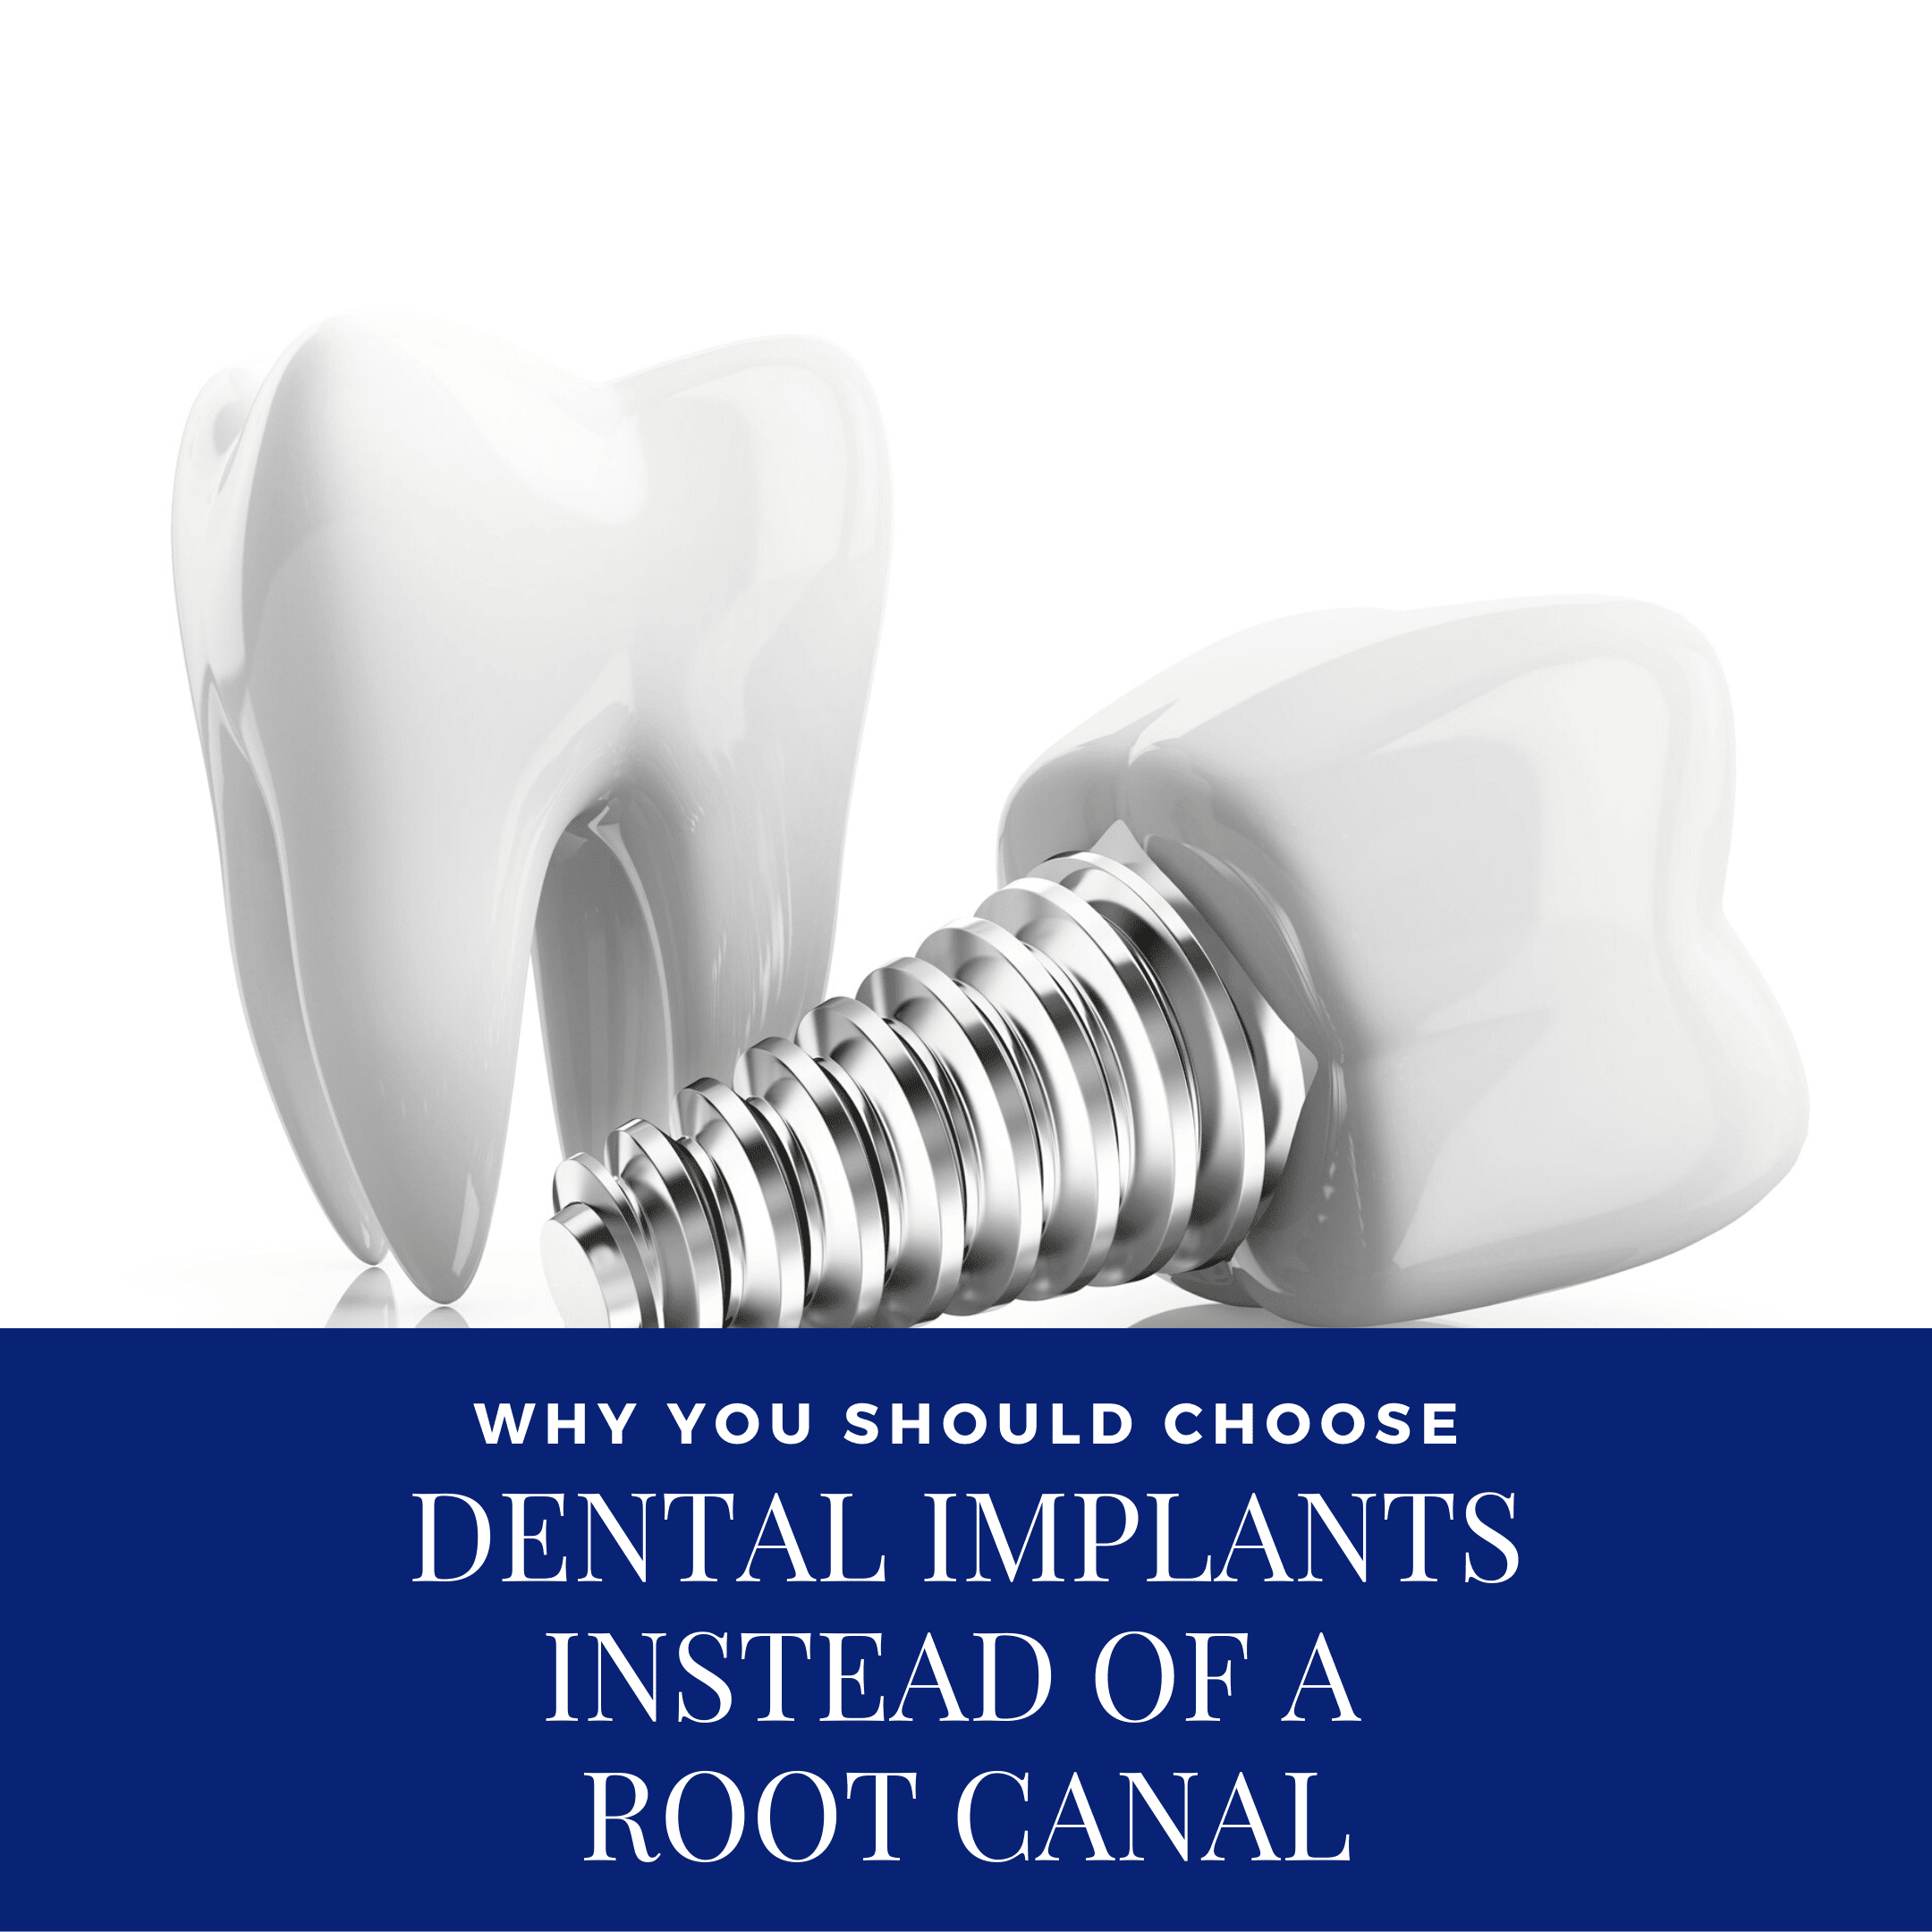 Why You Should Choose Dental Implants Instead of a Root Canal